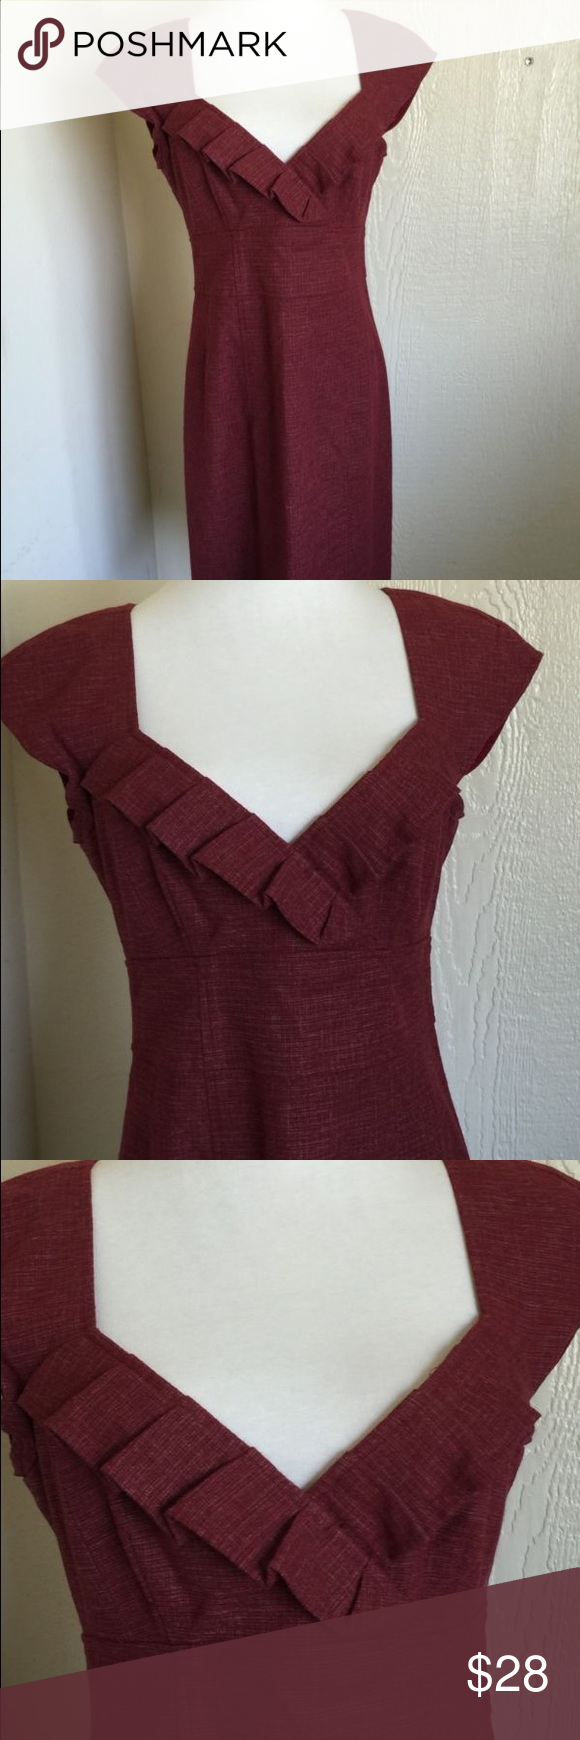 Nanette Lepore wool blend red dress Beautiful Nanette Lepore dress! It's made with a wool blend of 12%, 46% viscose, 35% cotton,6% nylon. It has an empire waist, cap sleeves and ruffle detailing on the neckline Nanette Lepore Dresses